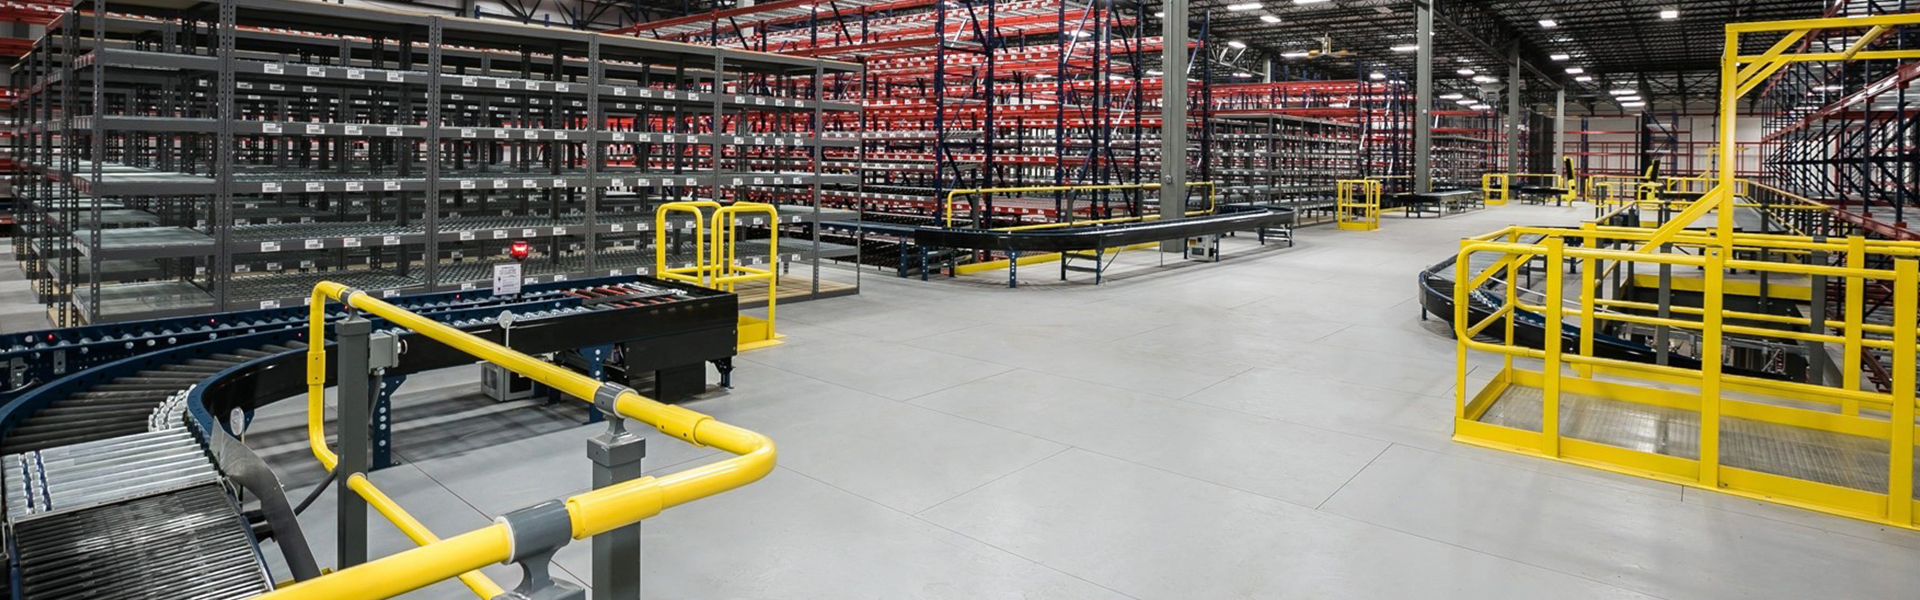 The Benefits of Customized Material Handling Products